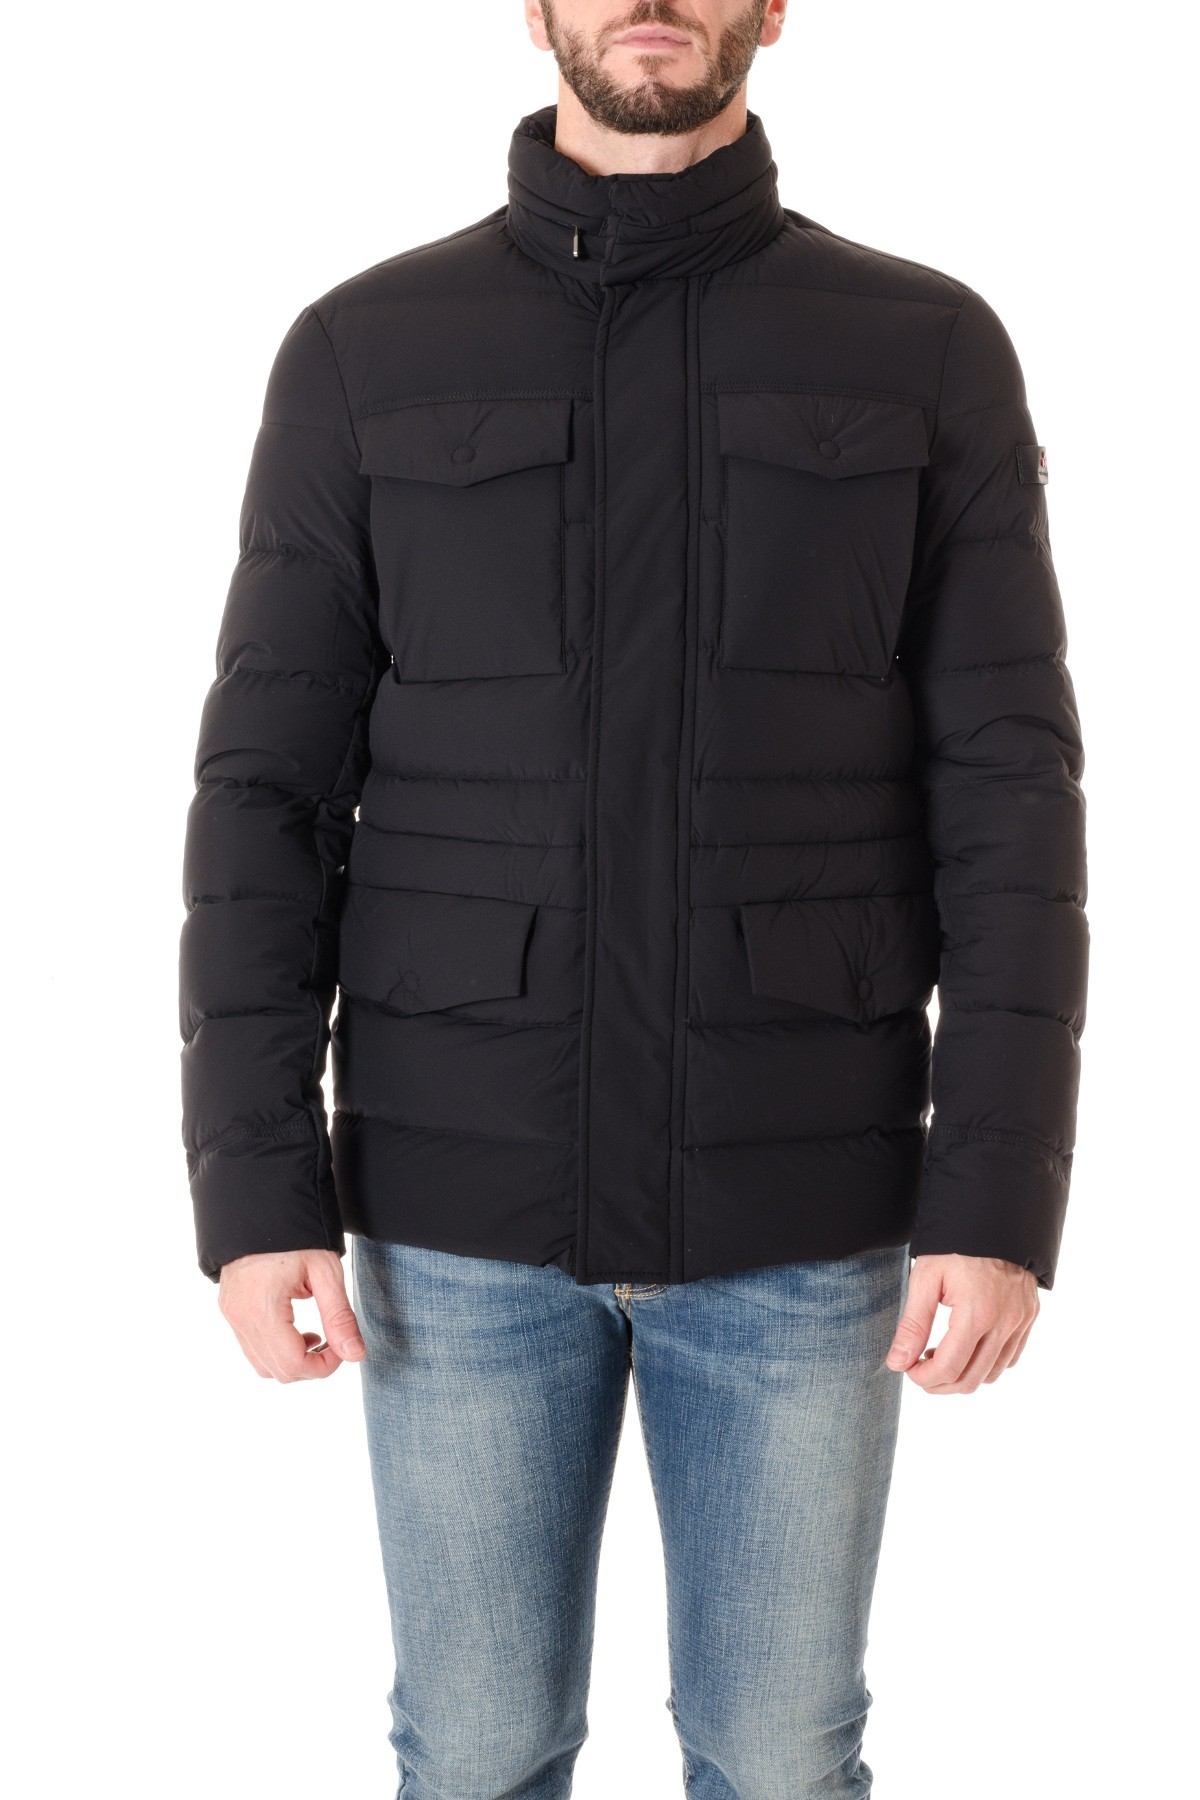 low priced 111bd 89584 PEUTEREY Black jacket for men GIOVO F/W 16-17